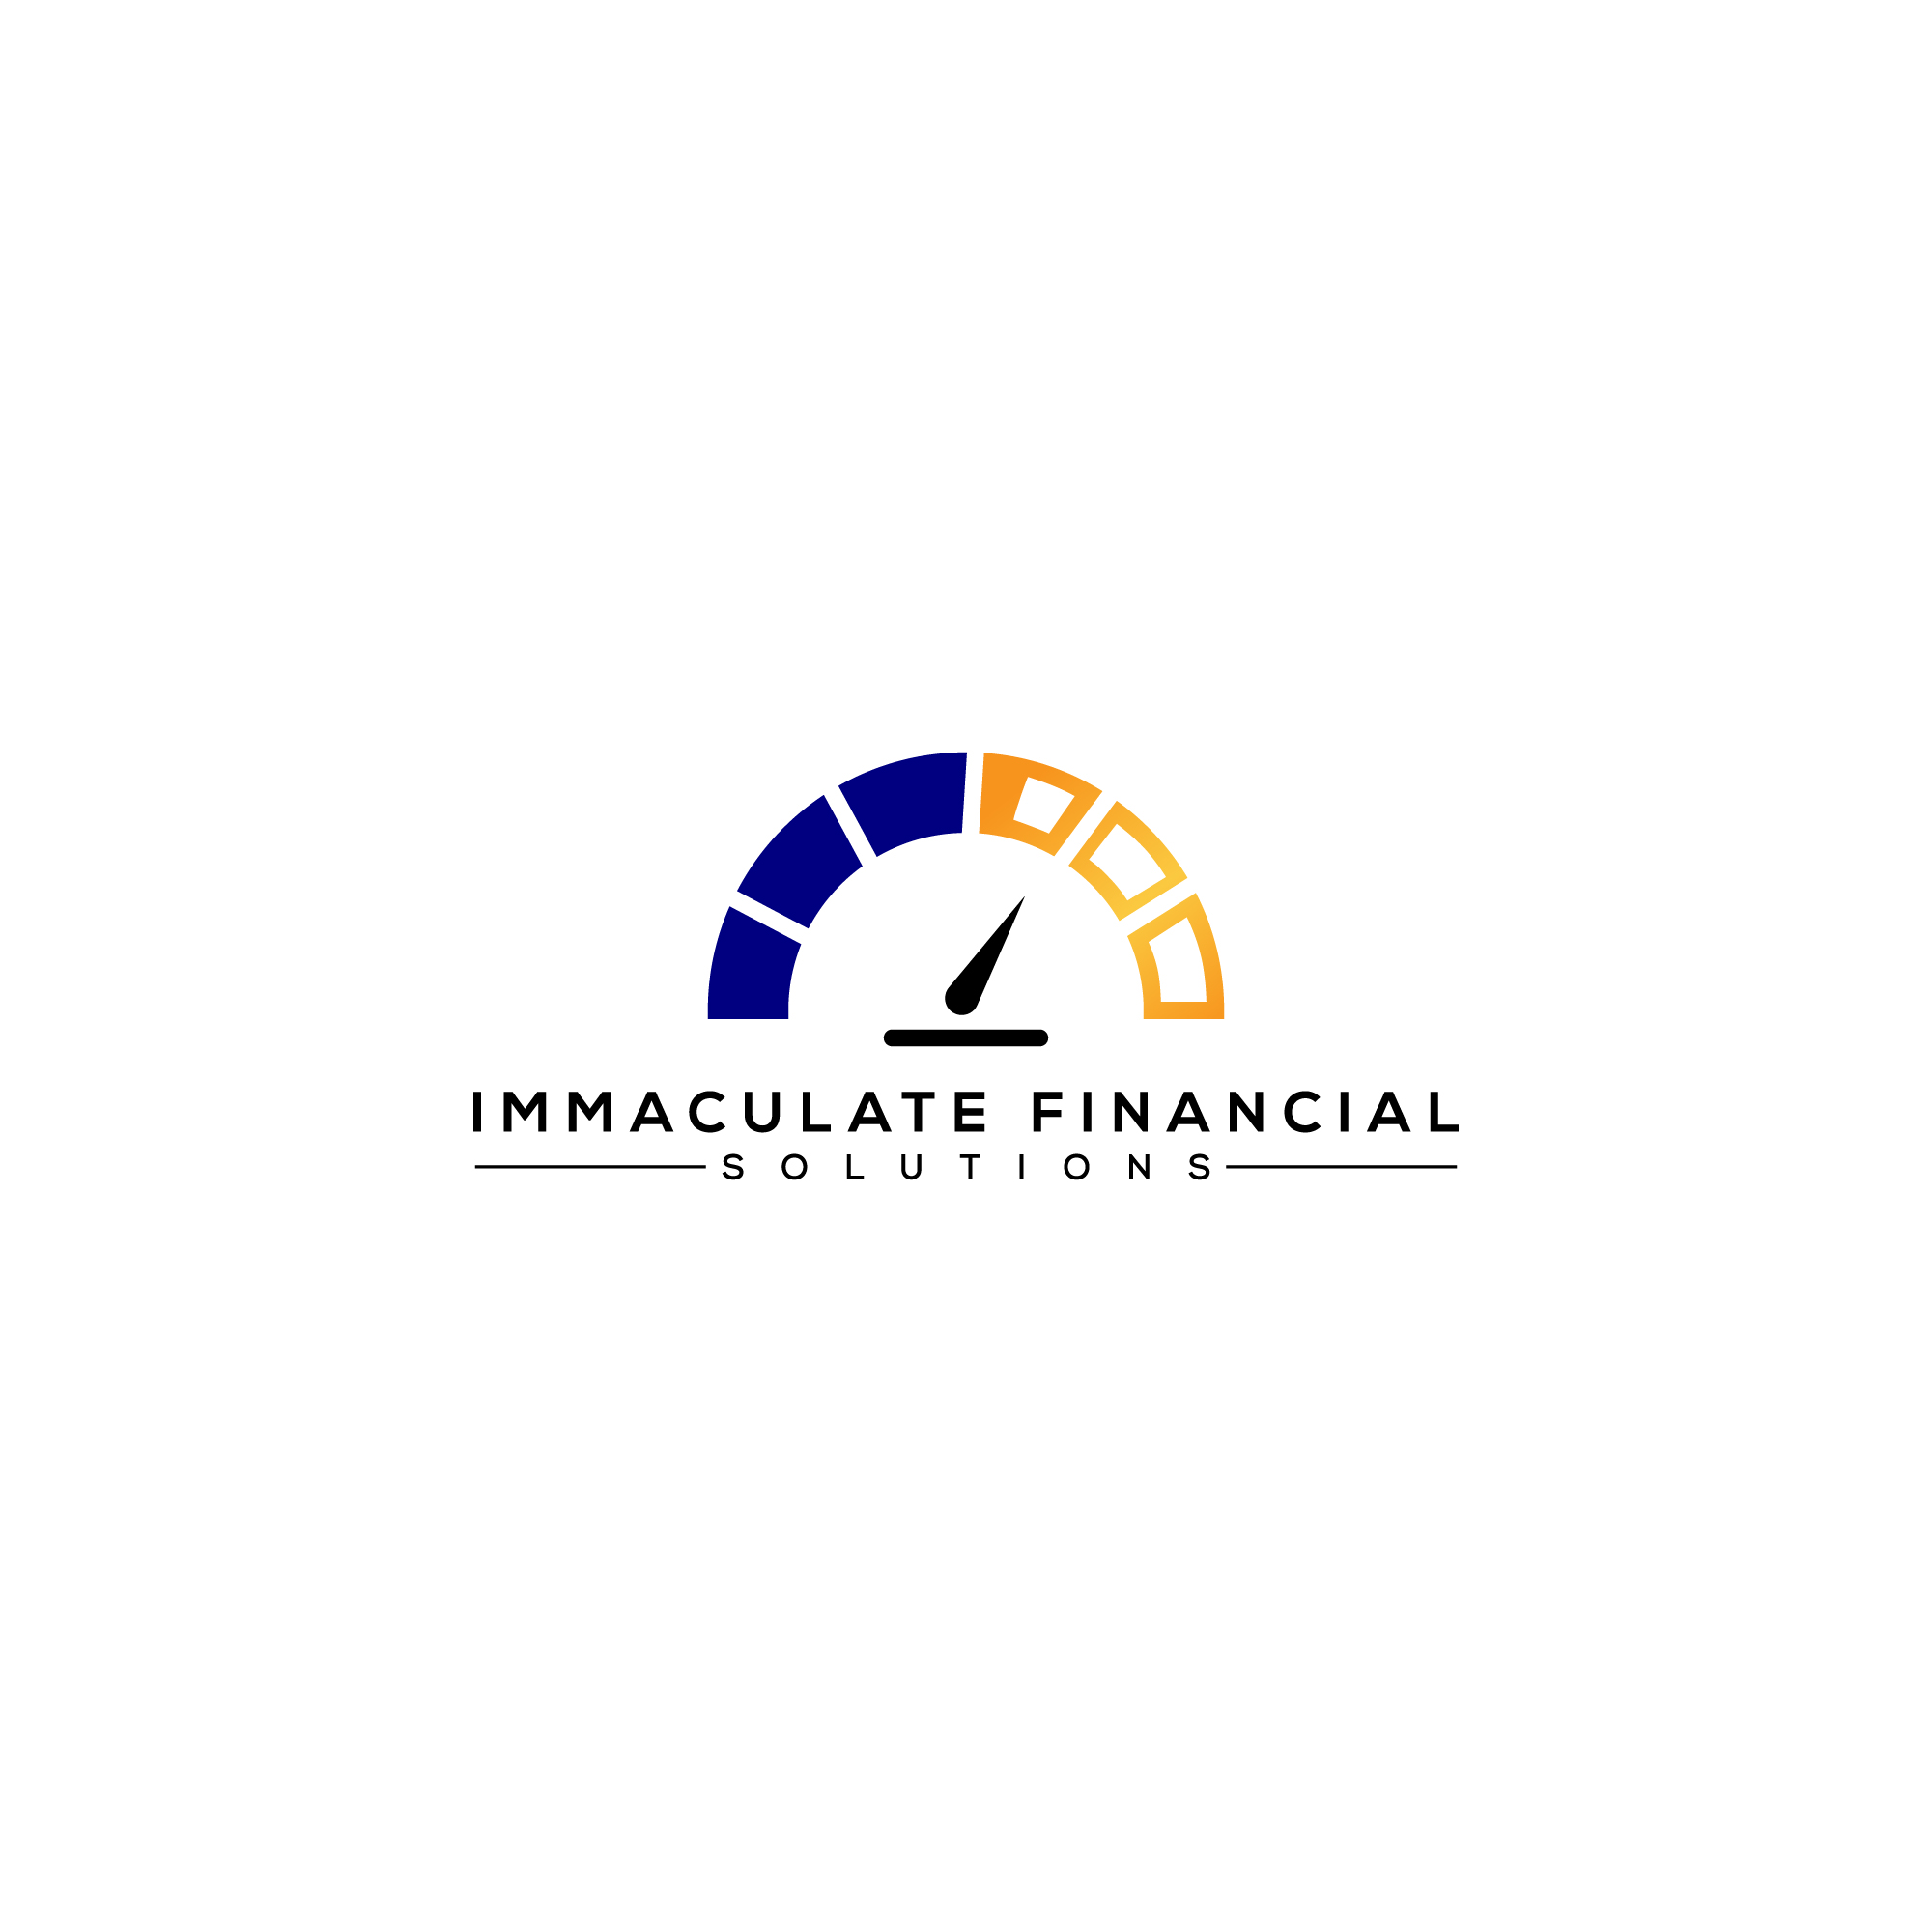 Immaculate Financial Solutions